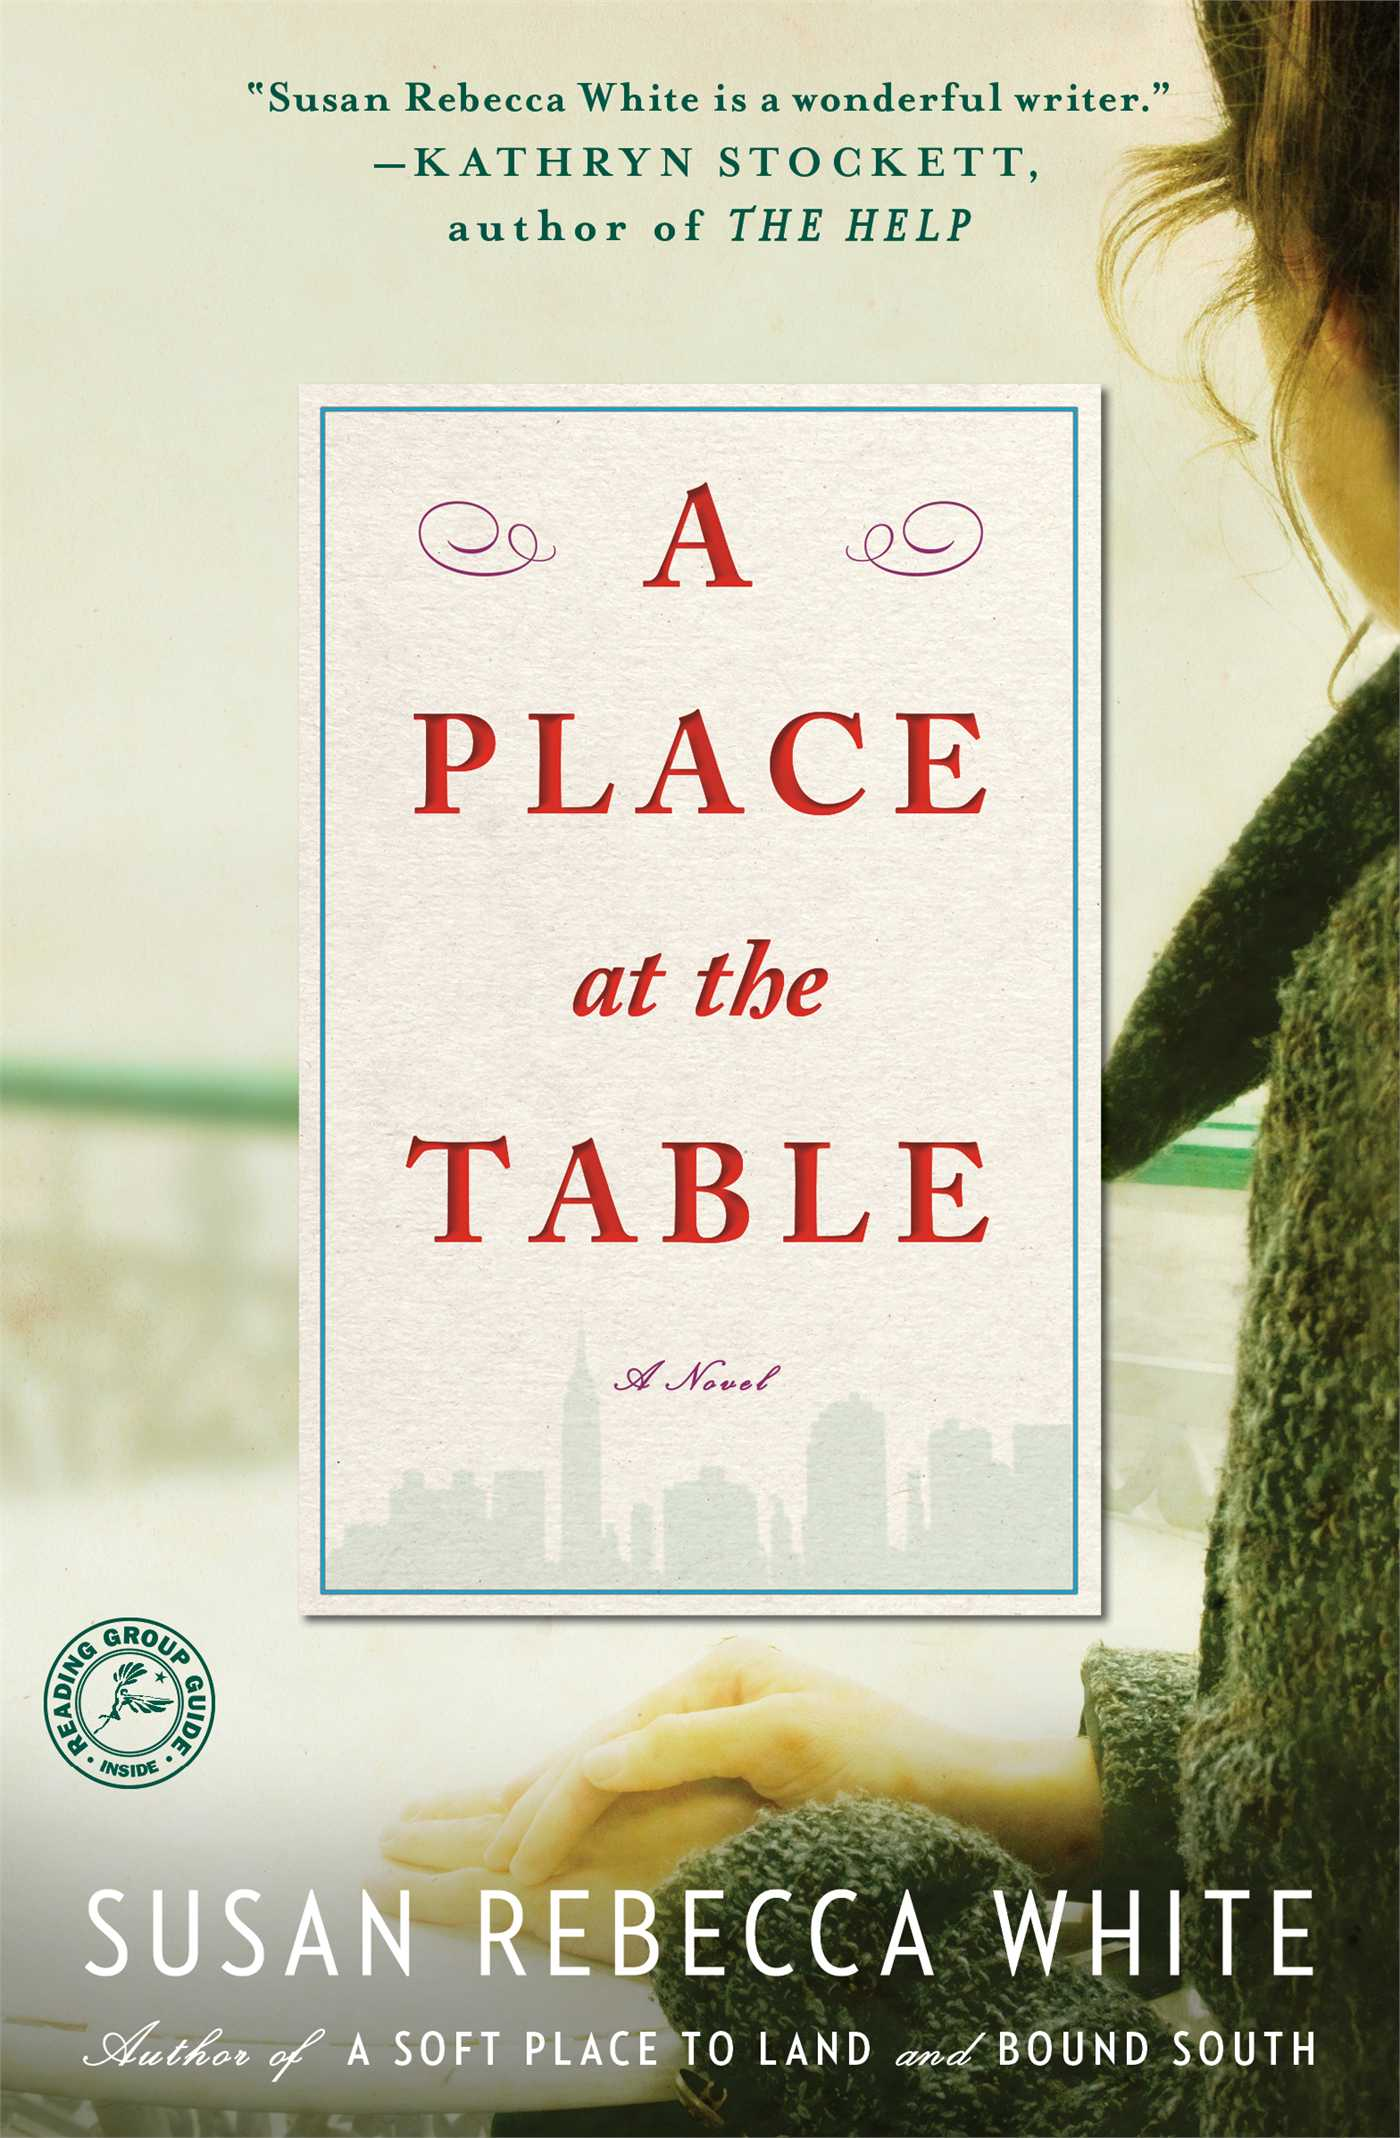 Place-at-the-table-9781451608892_hr